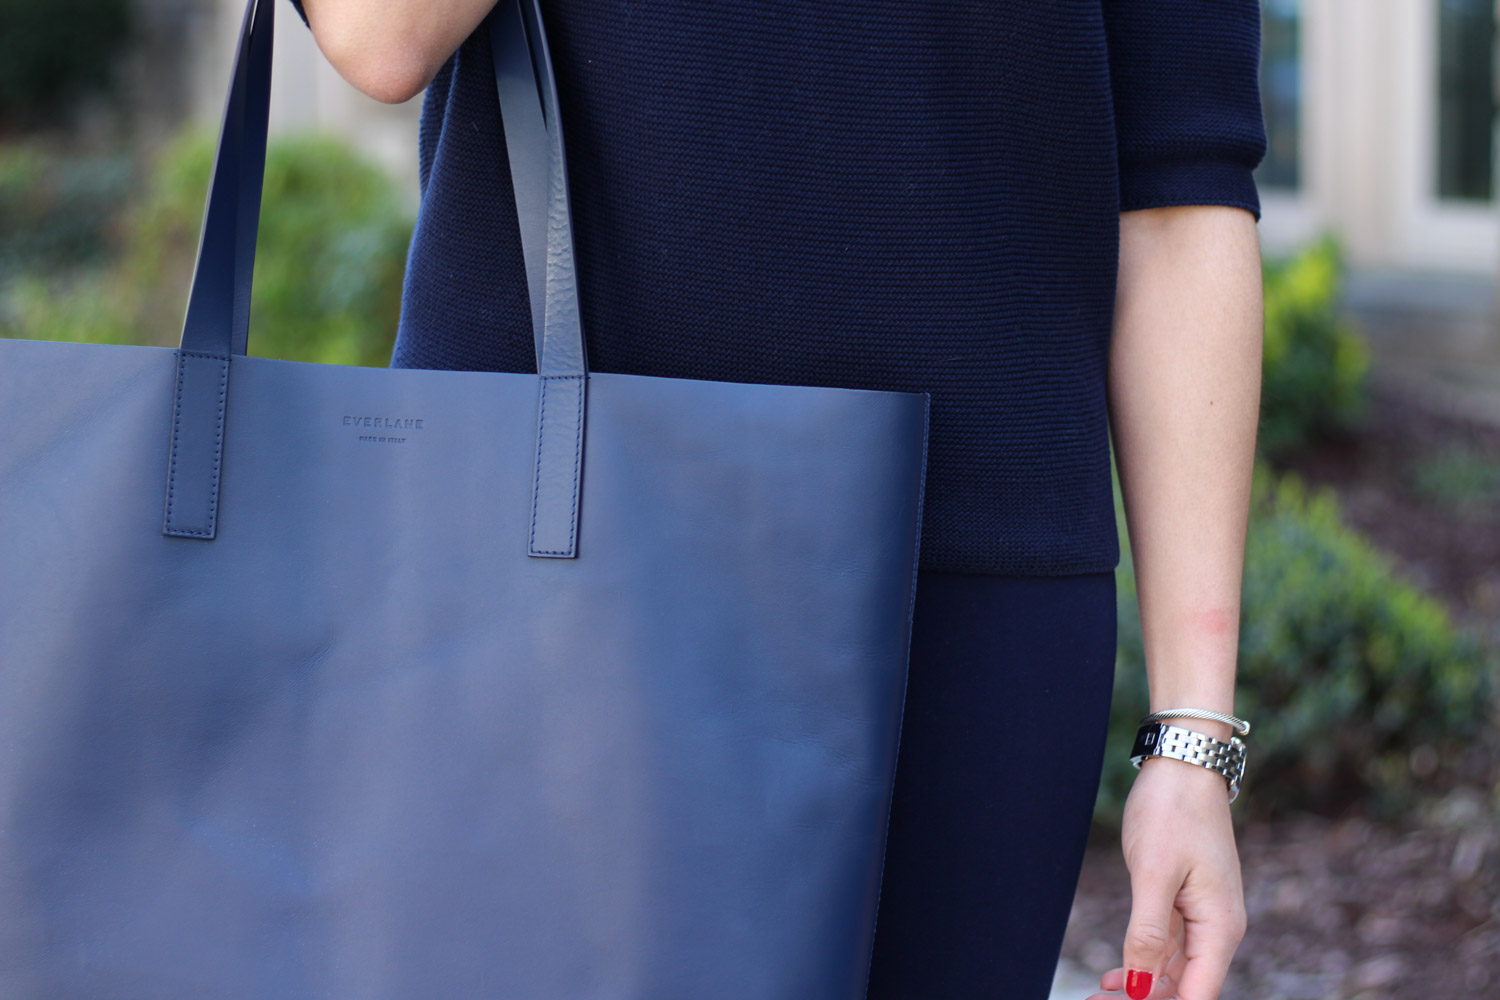 Everlane Market Tote - All navy outfit featured by popular DC fashion blogger, Monica Dutia